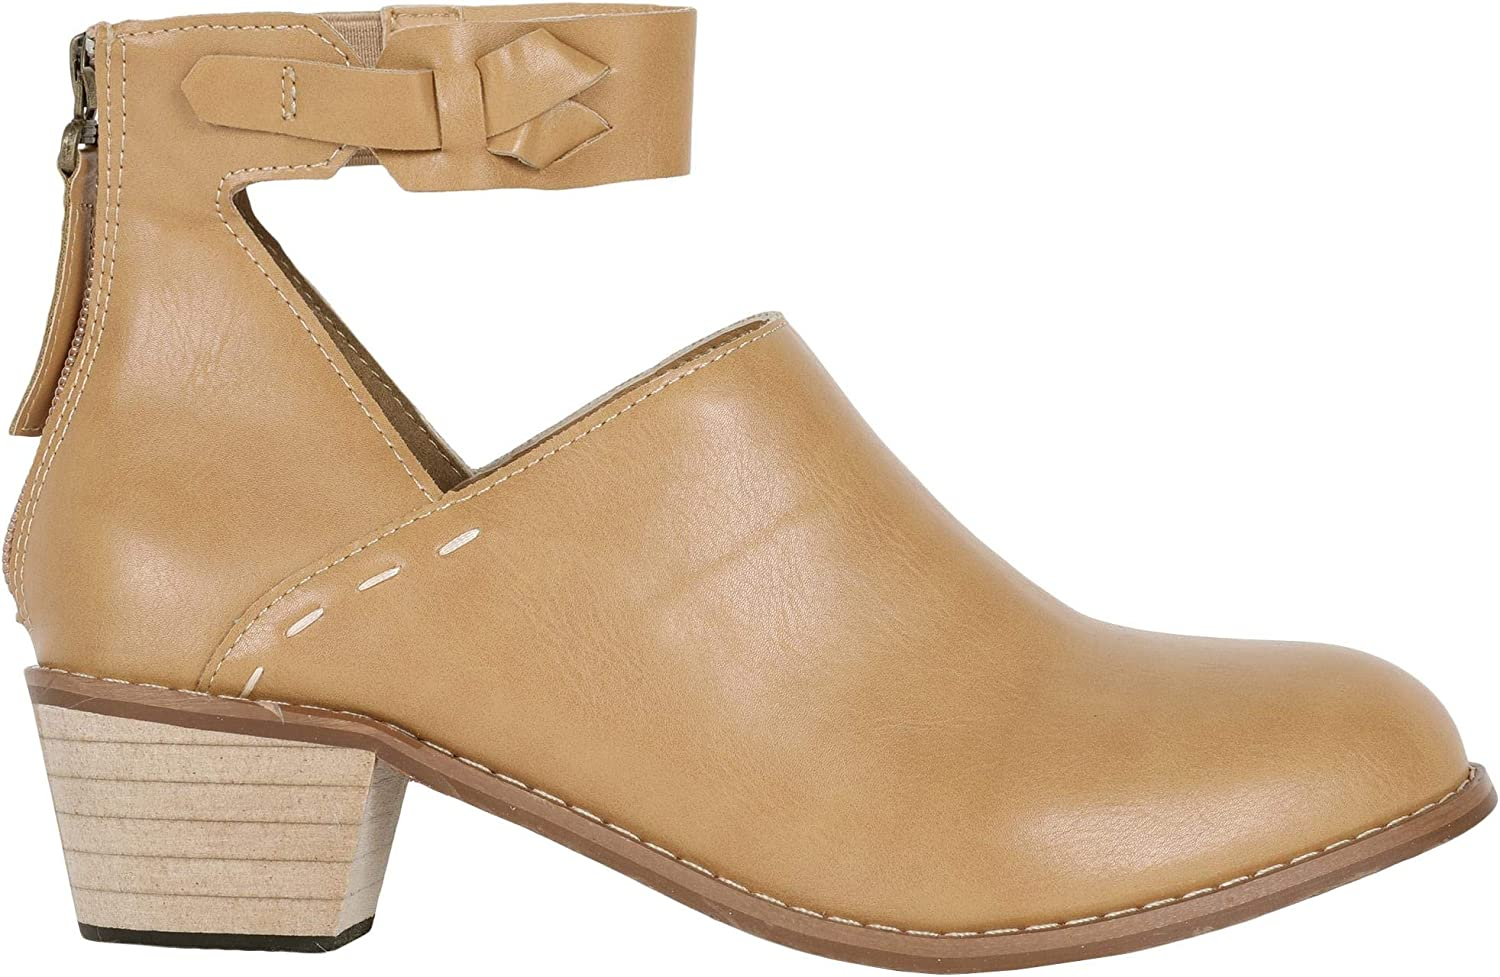 Womens Cutout Ankle Strap Booties Chunky Block Stacked Mid Heel Zip Up Pump Boots (8 B(M) US, Brown)